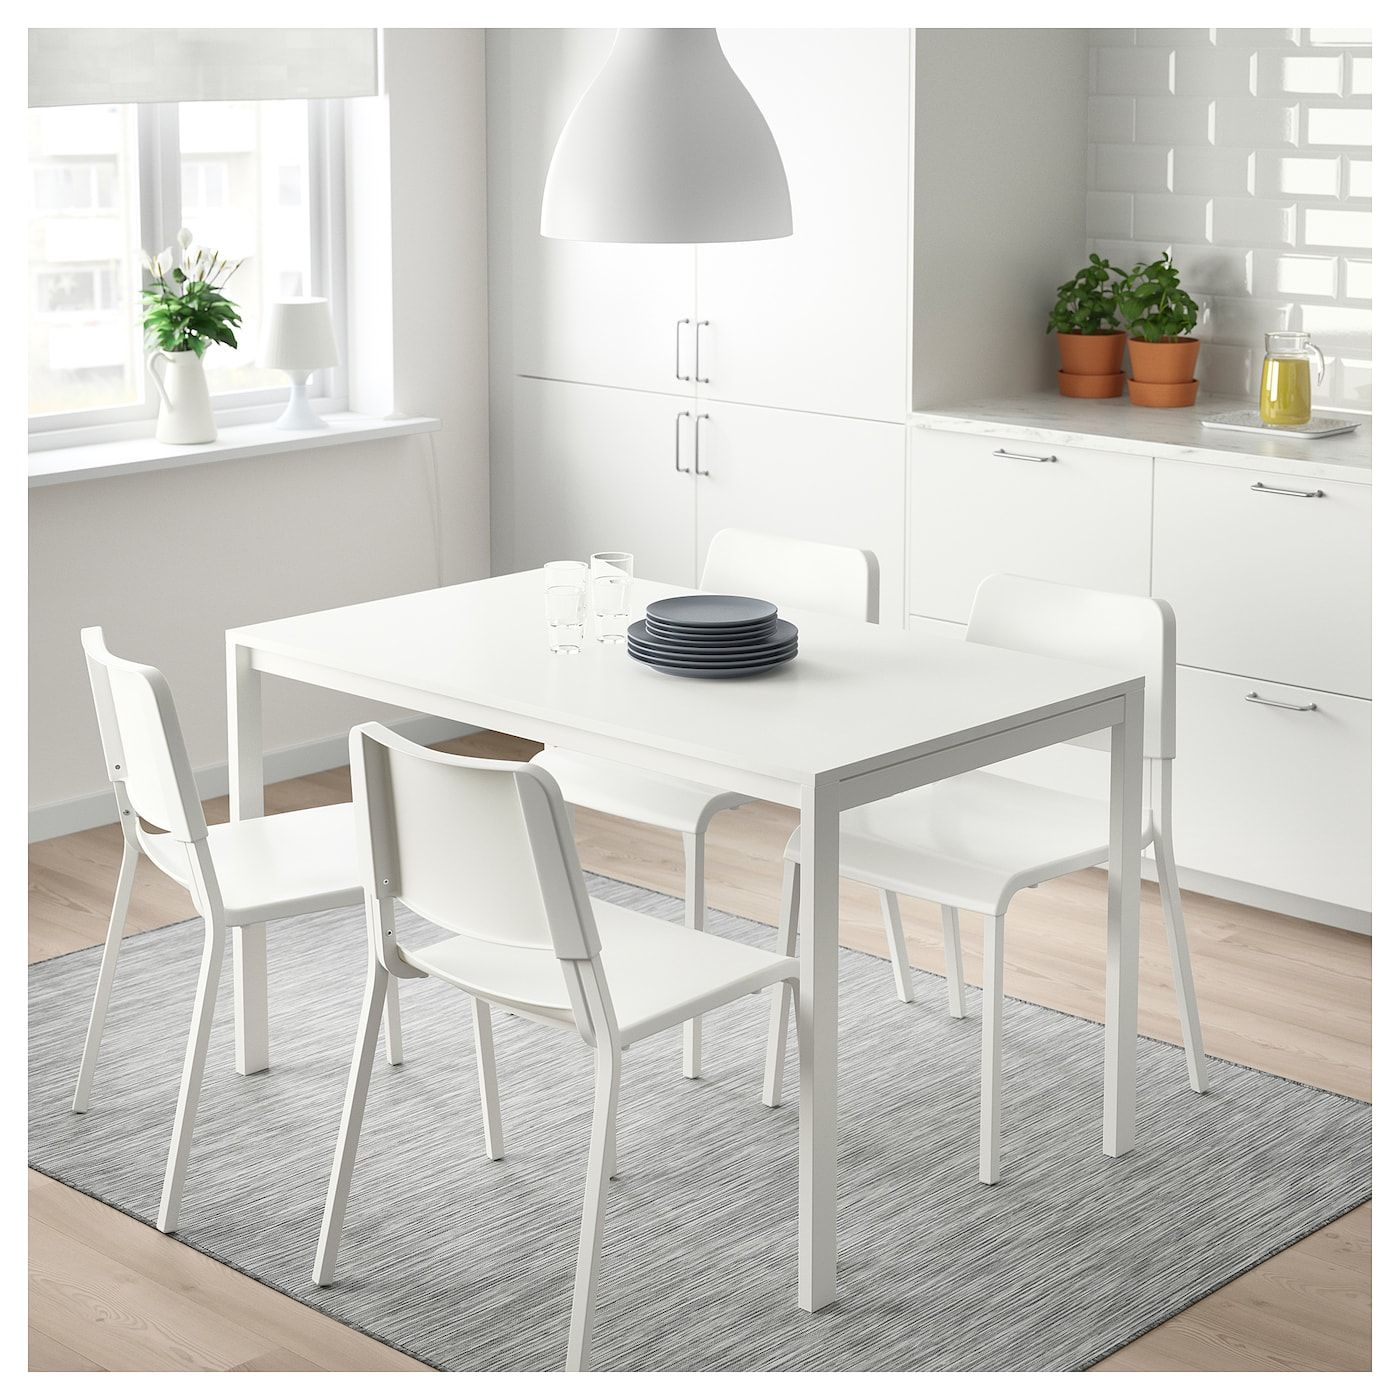 Melltorp Blanc 2019Bureau TableChaises Boulot In Table gv7fyYb6